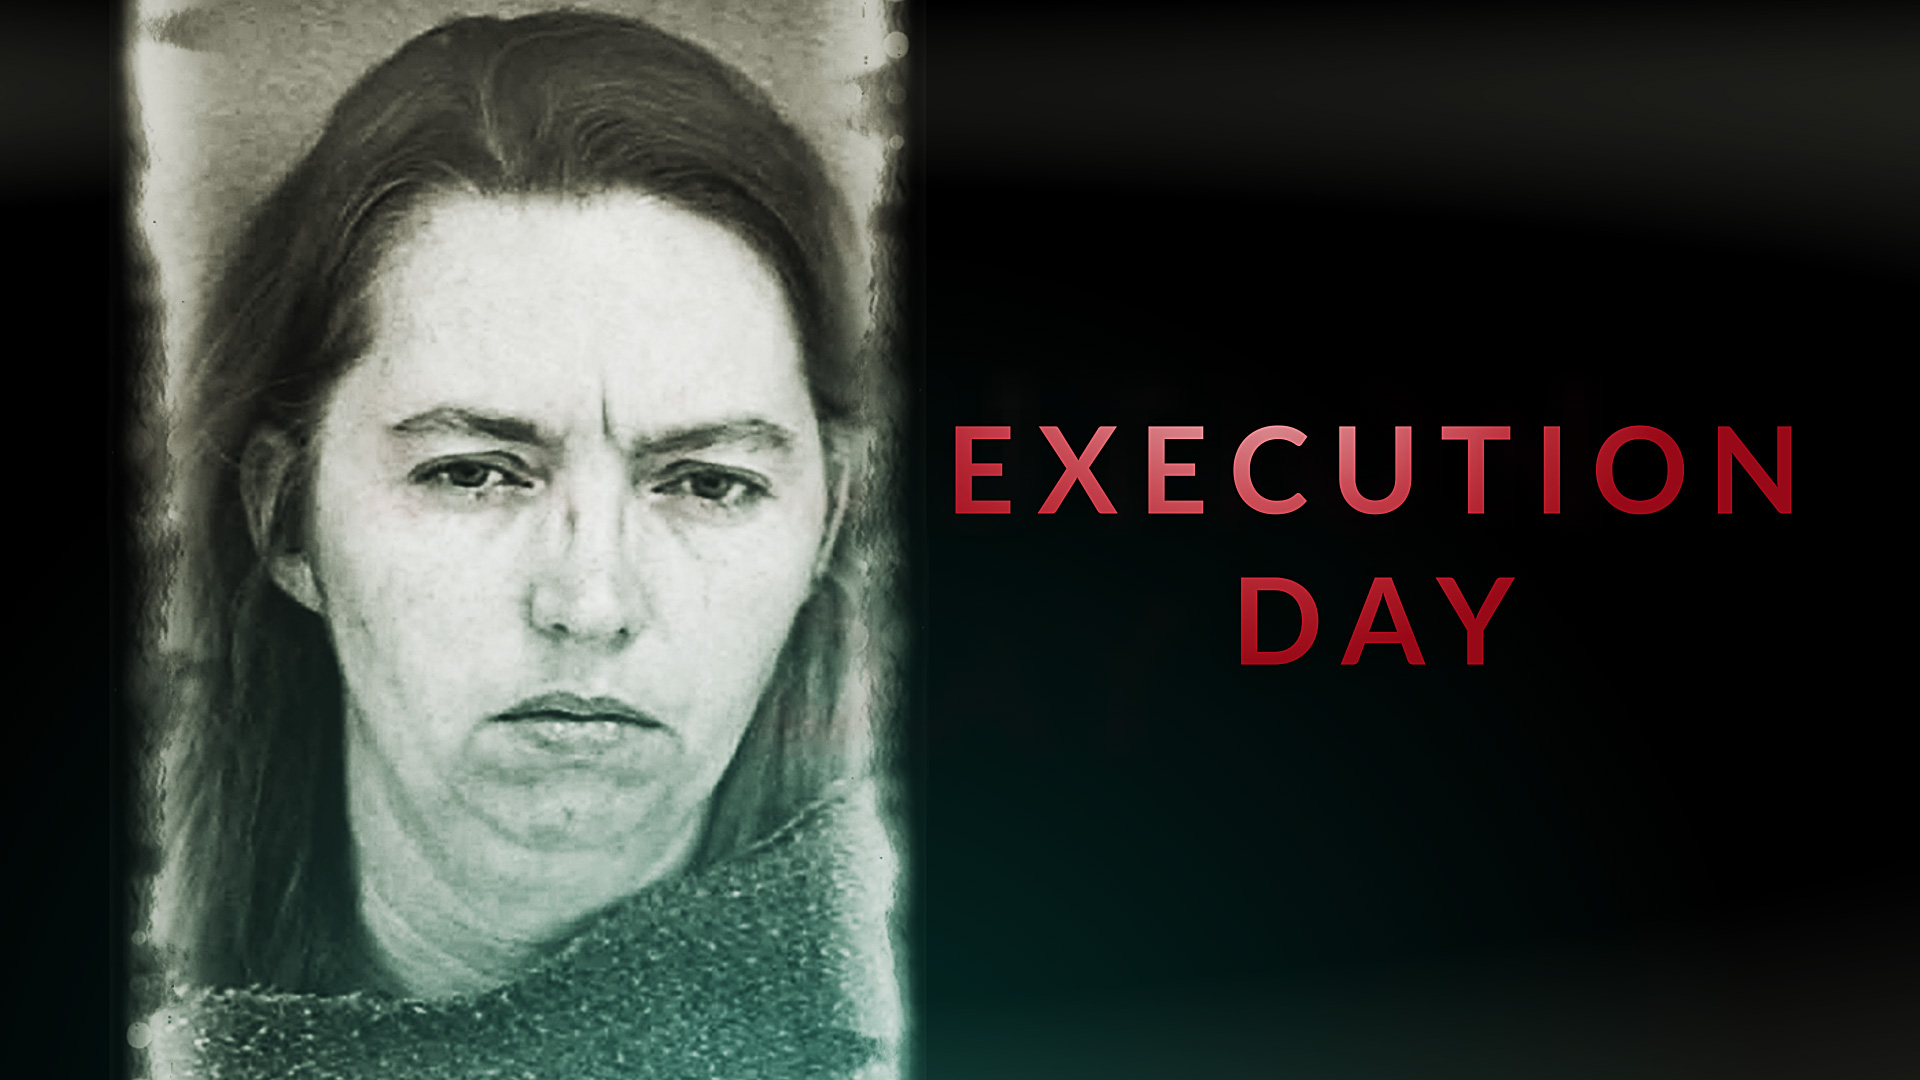 US Supreme Court denies Lisa Montgomery's stays, clearing way for execution